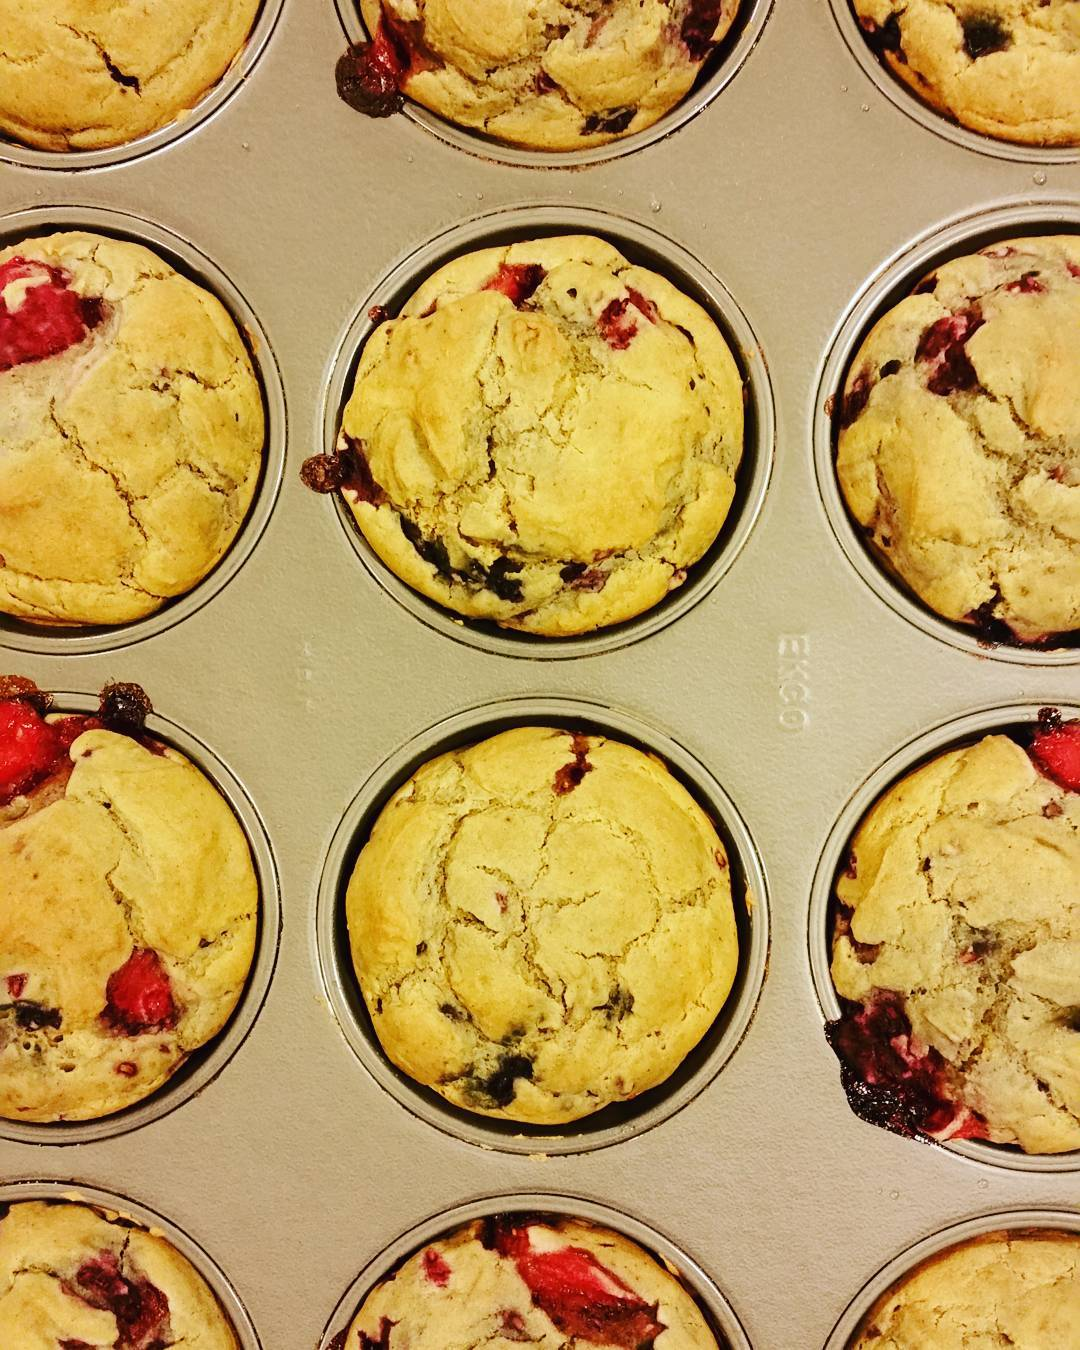 maple mixed berry muffins by @mariacbair